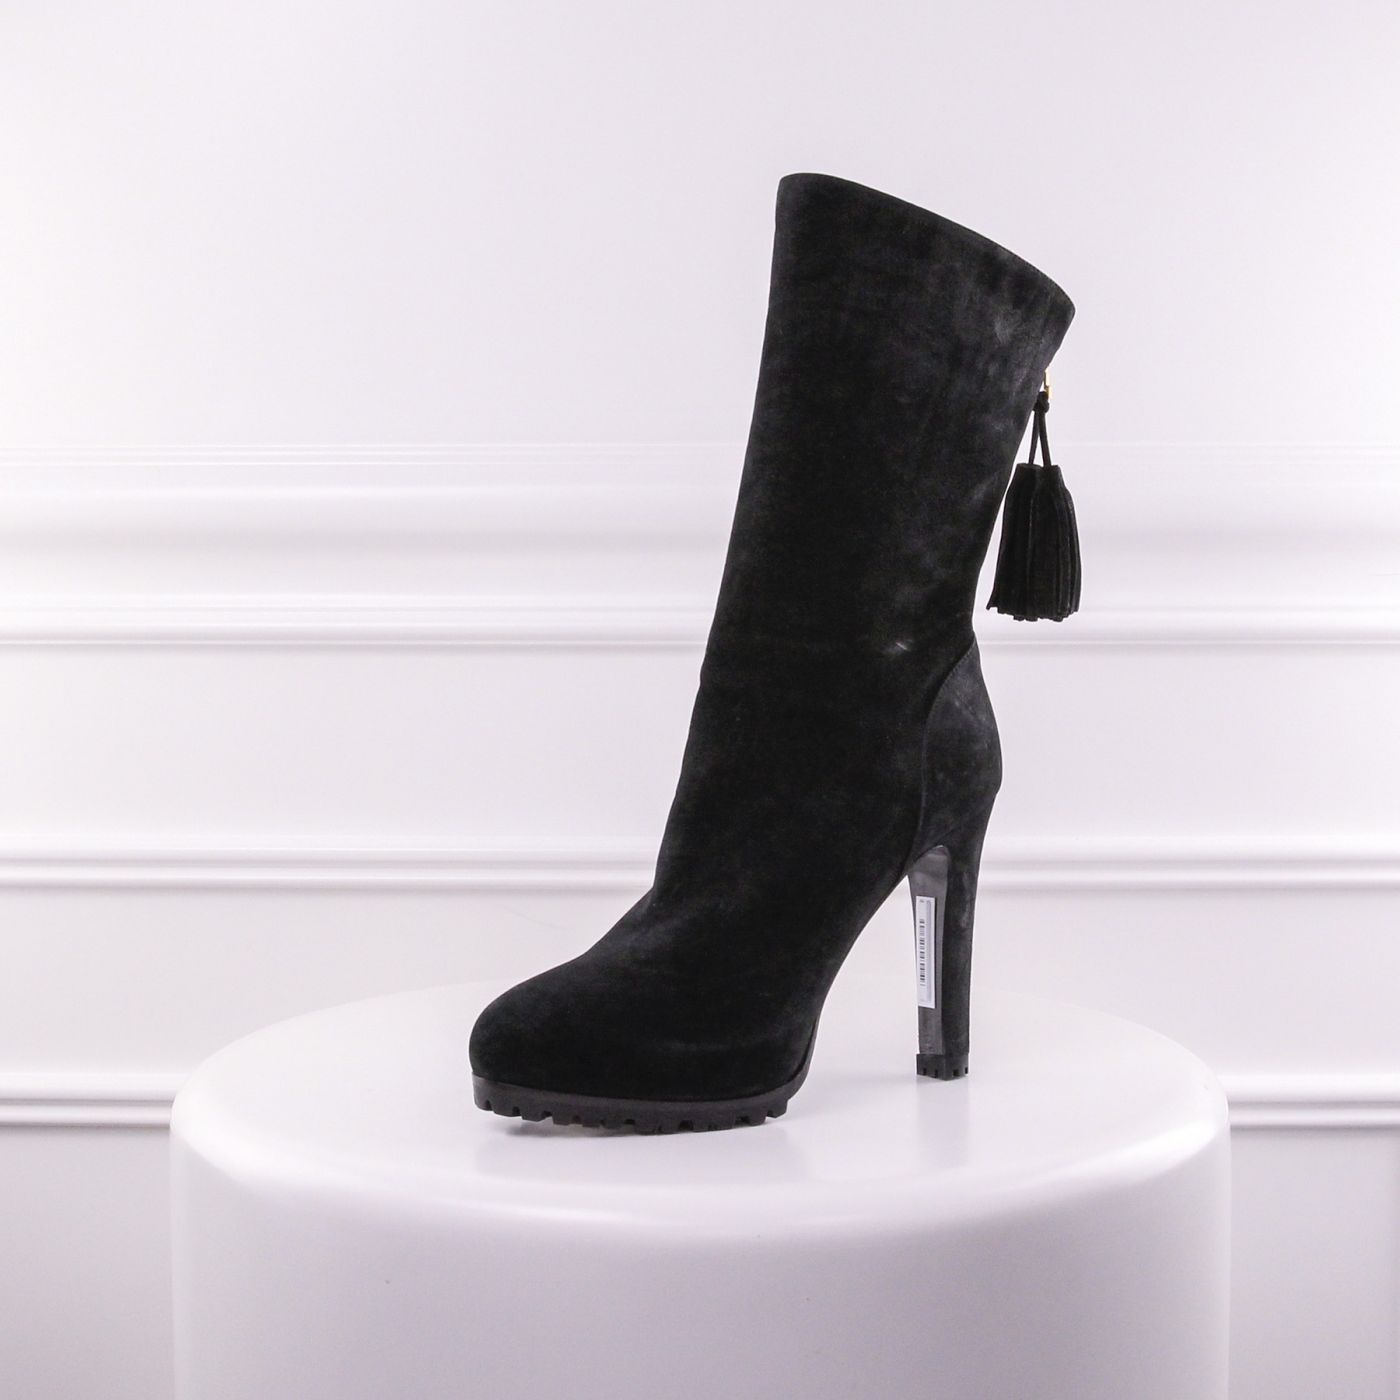 YSL  Passy Black Suede Boots 38.5